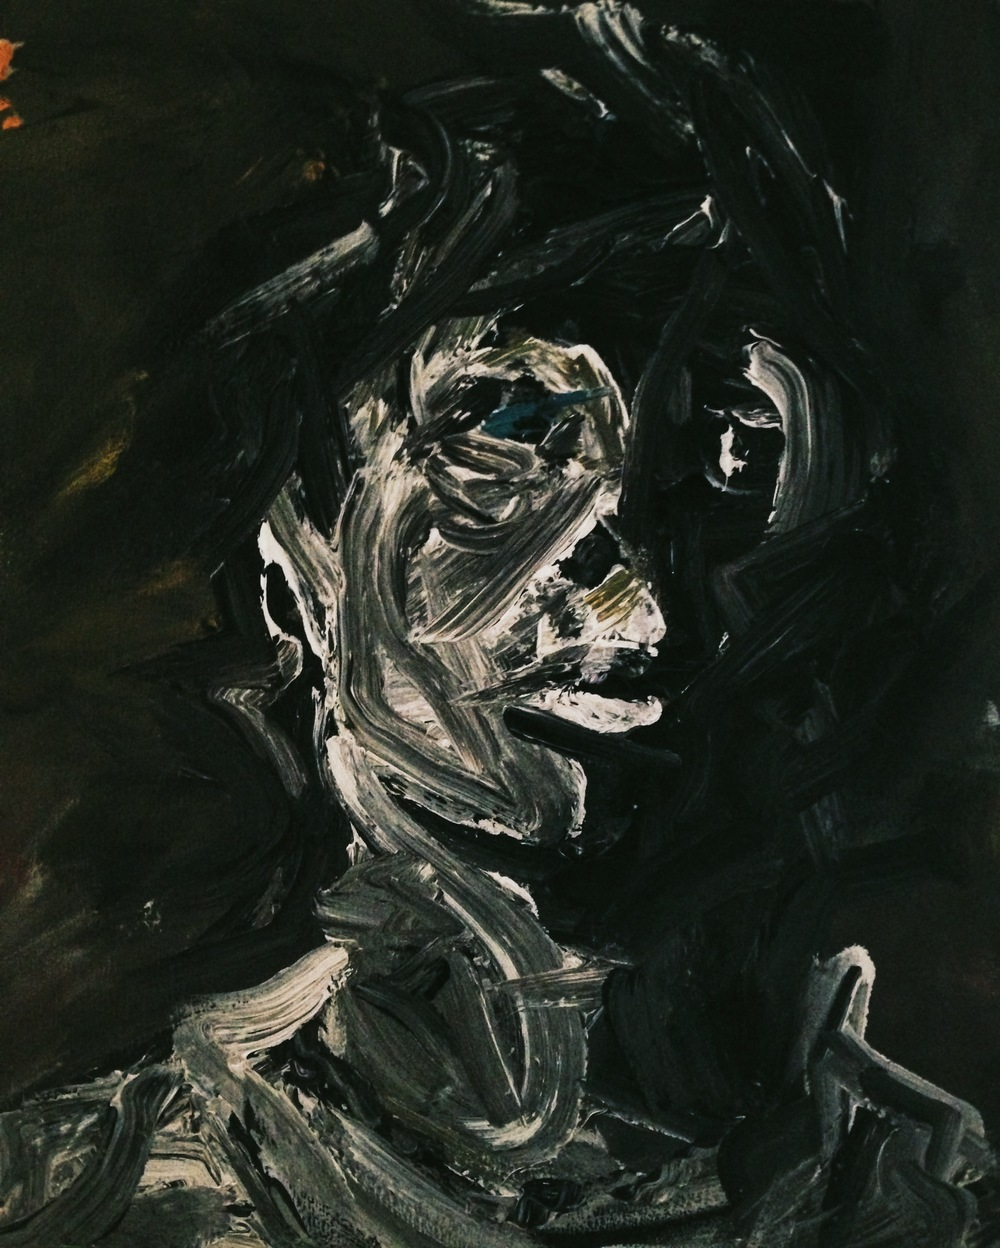 Self Portrait after Frank Auerbach , 2011 Acrylic on canvas.